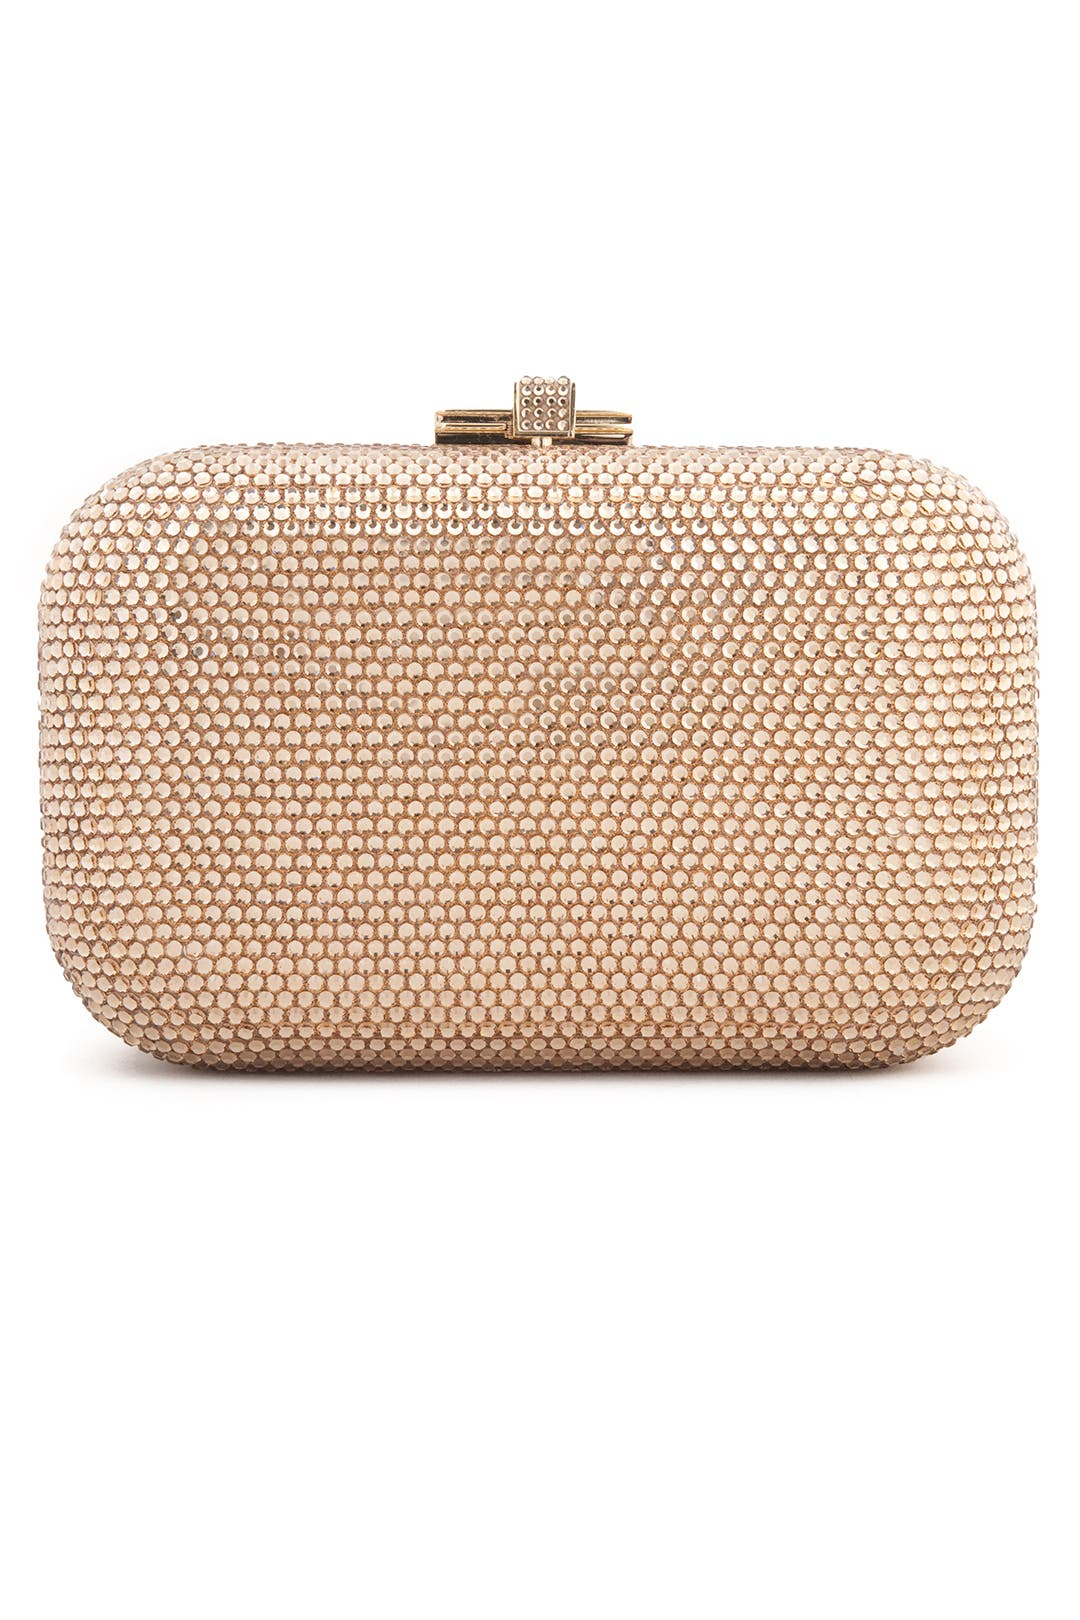 Gold Fortune Cookie Clutch by Judith Leiber